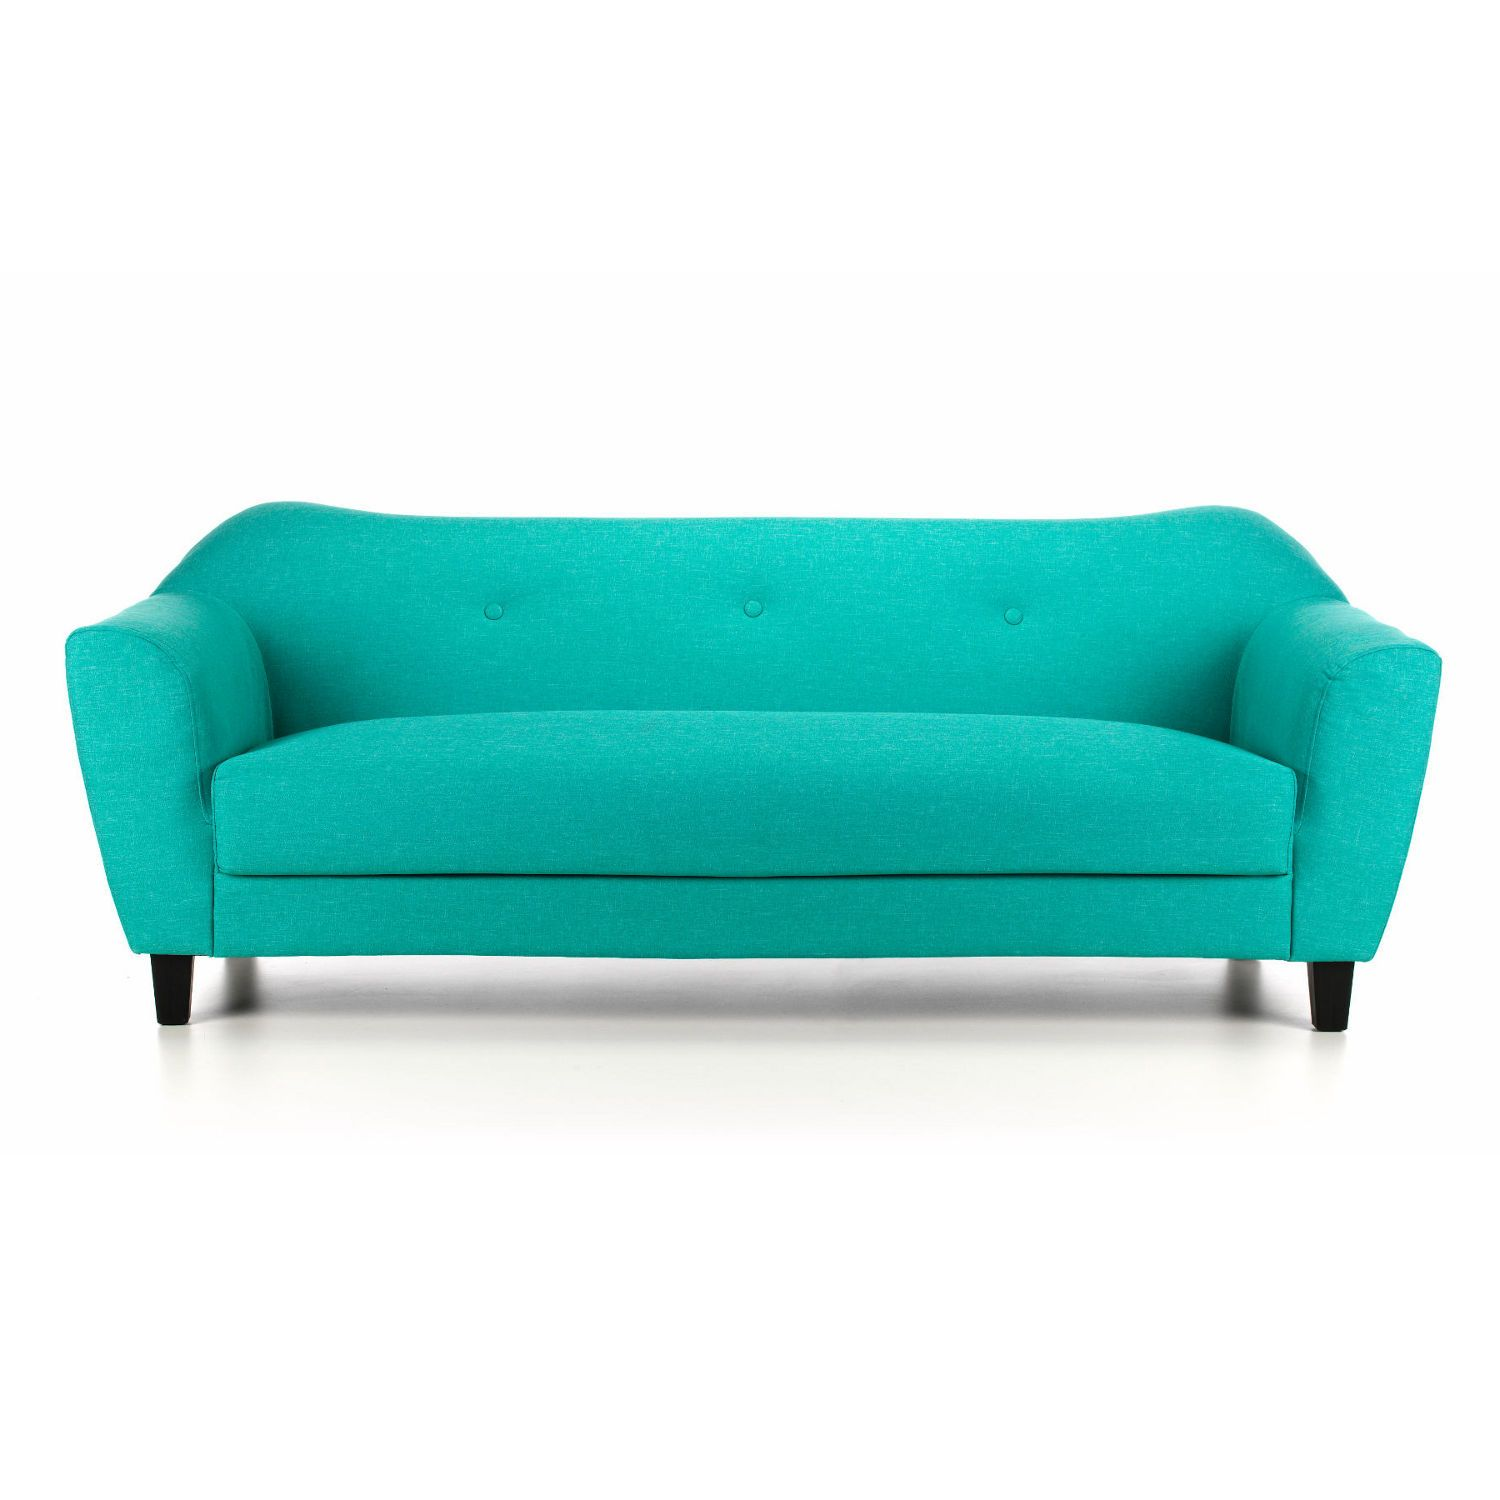 Cassie 3 Seater Fabric Sofa – Next Day Delivery Cassie 3 Seater